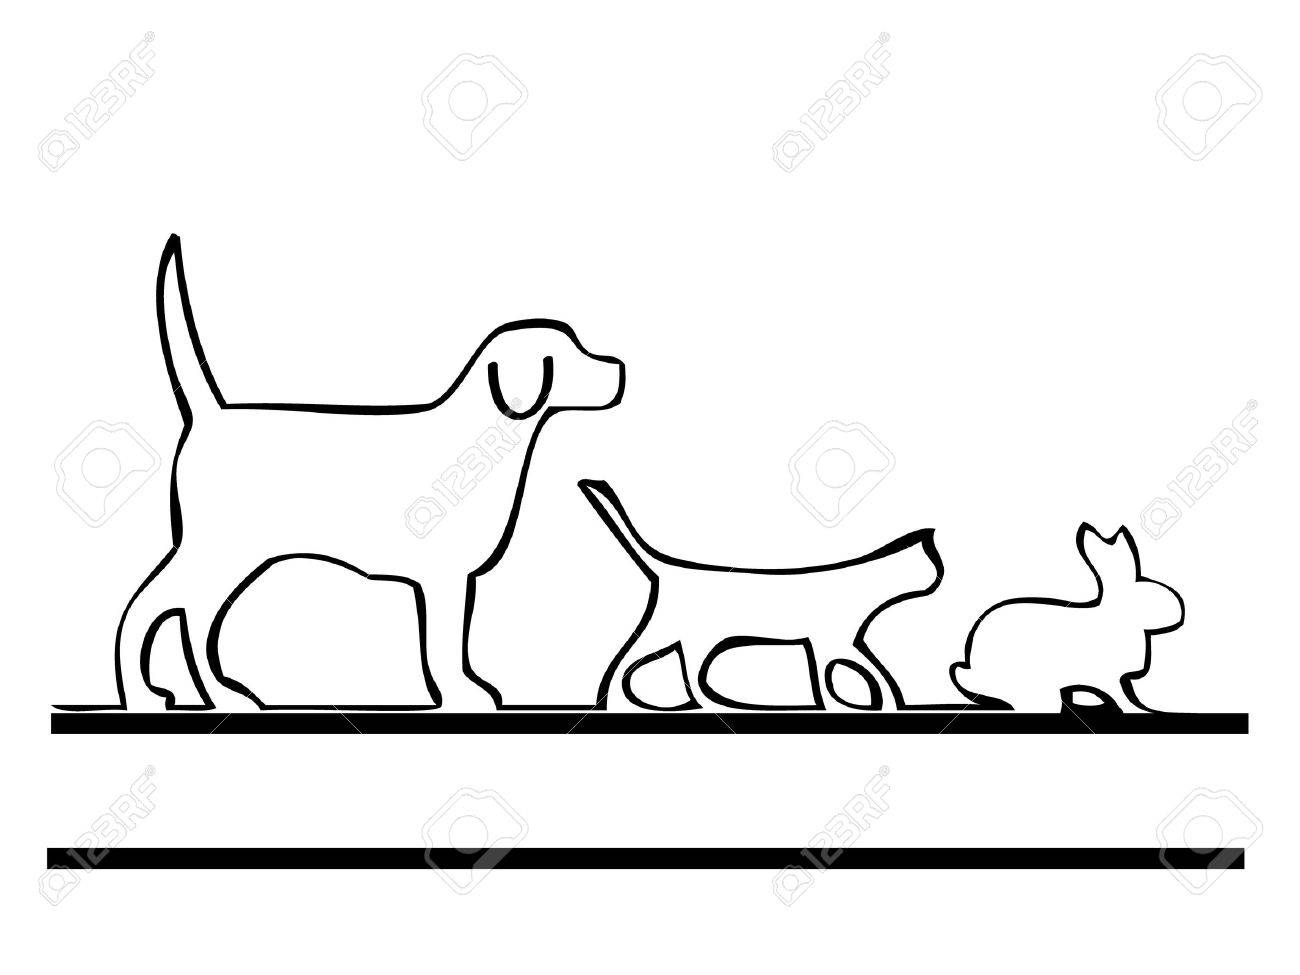 26 362 dog and cat cliparts stock vector and royalty free dog and